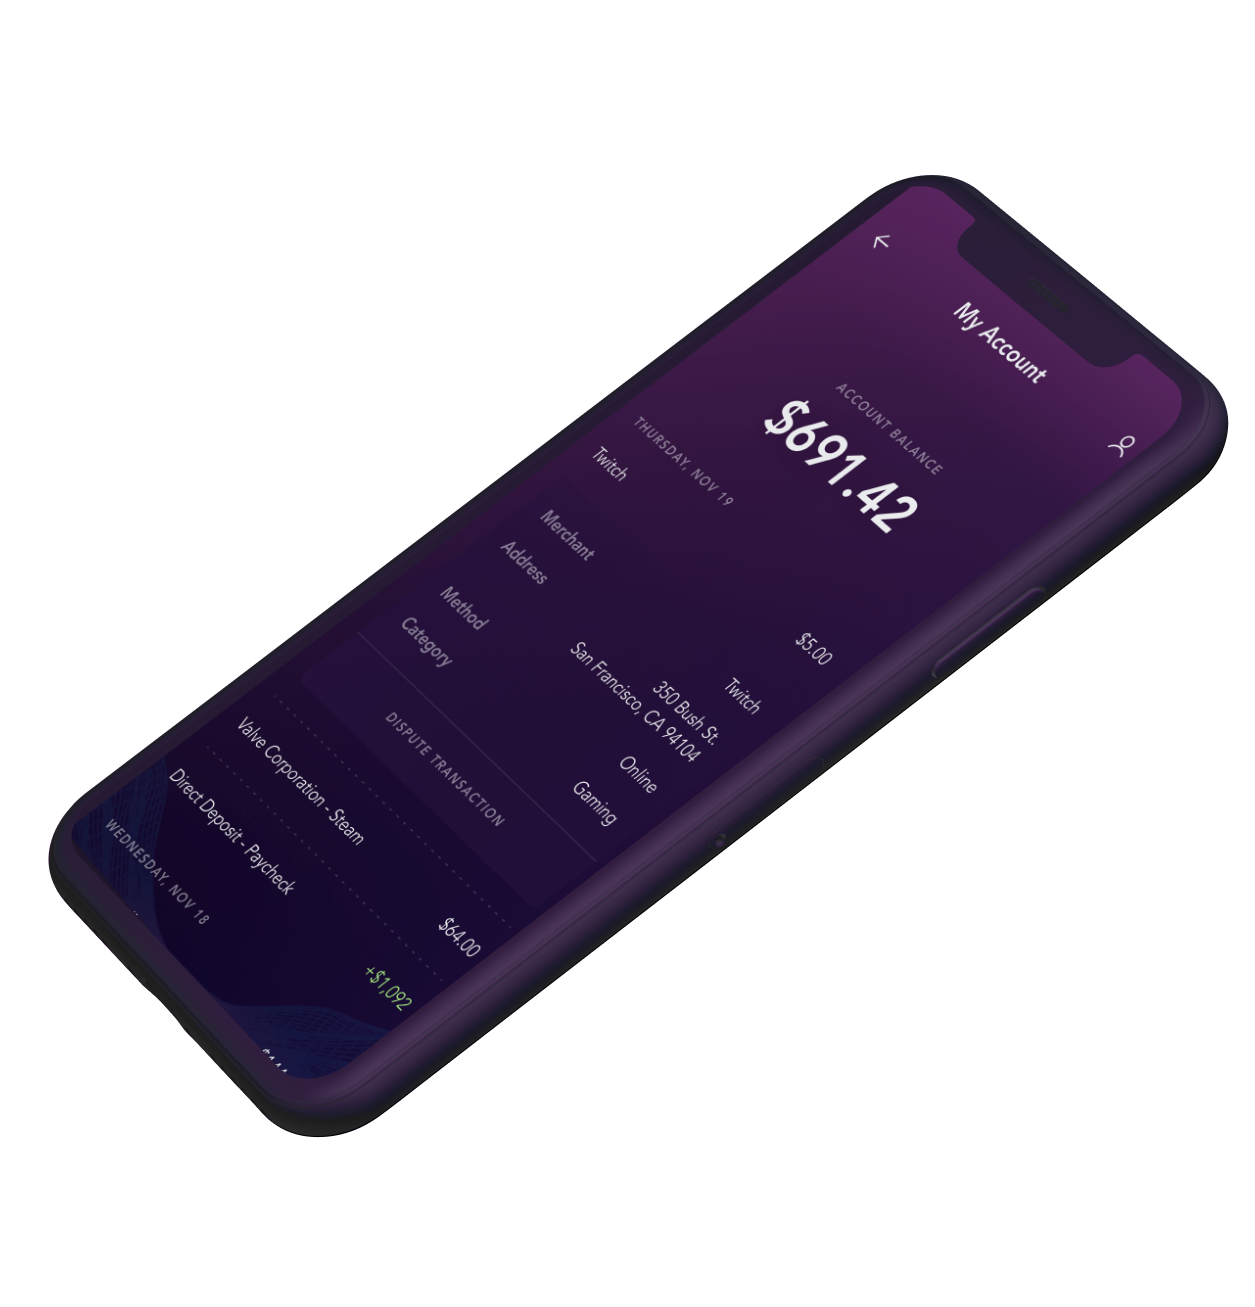 Phone with Astro app loaded showing transactions and account balance